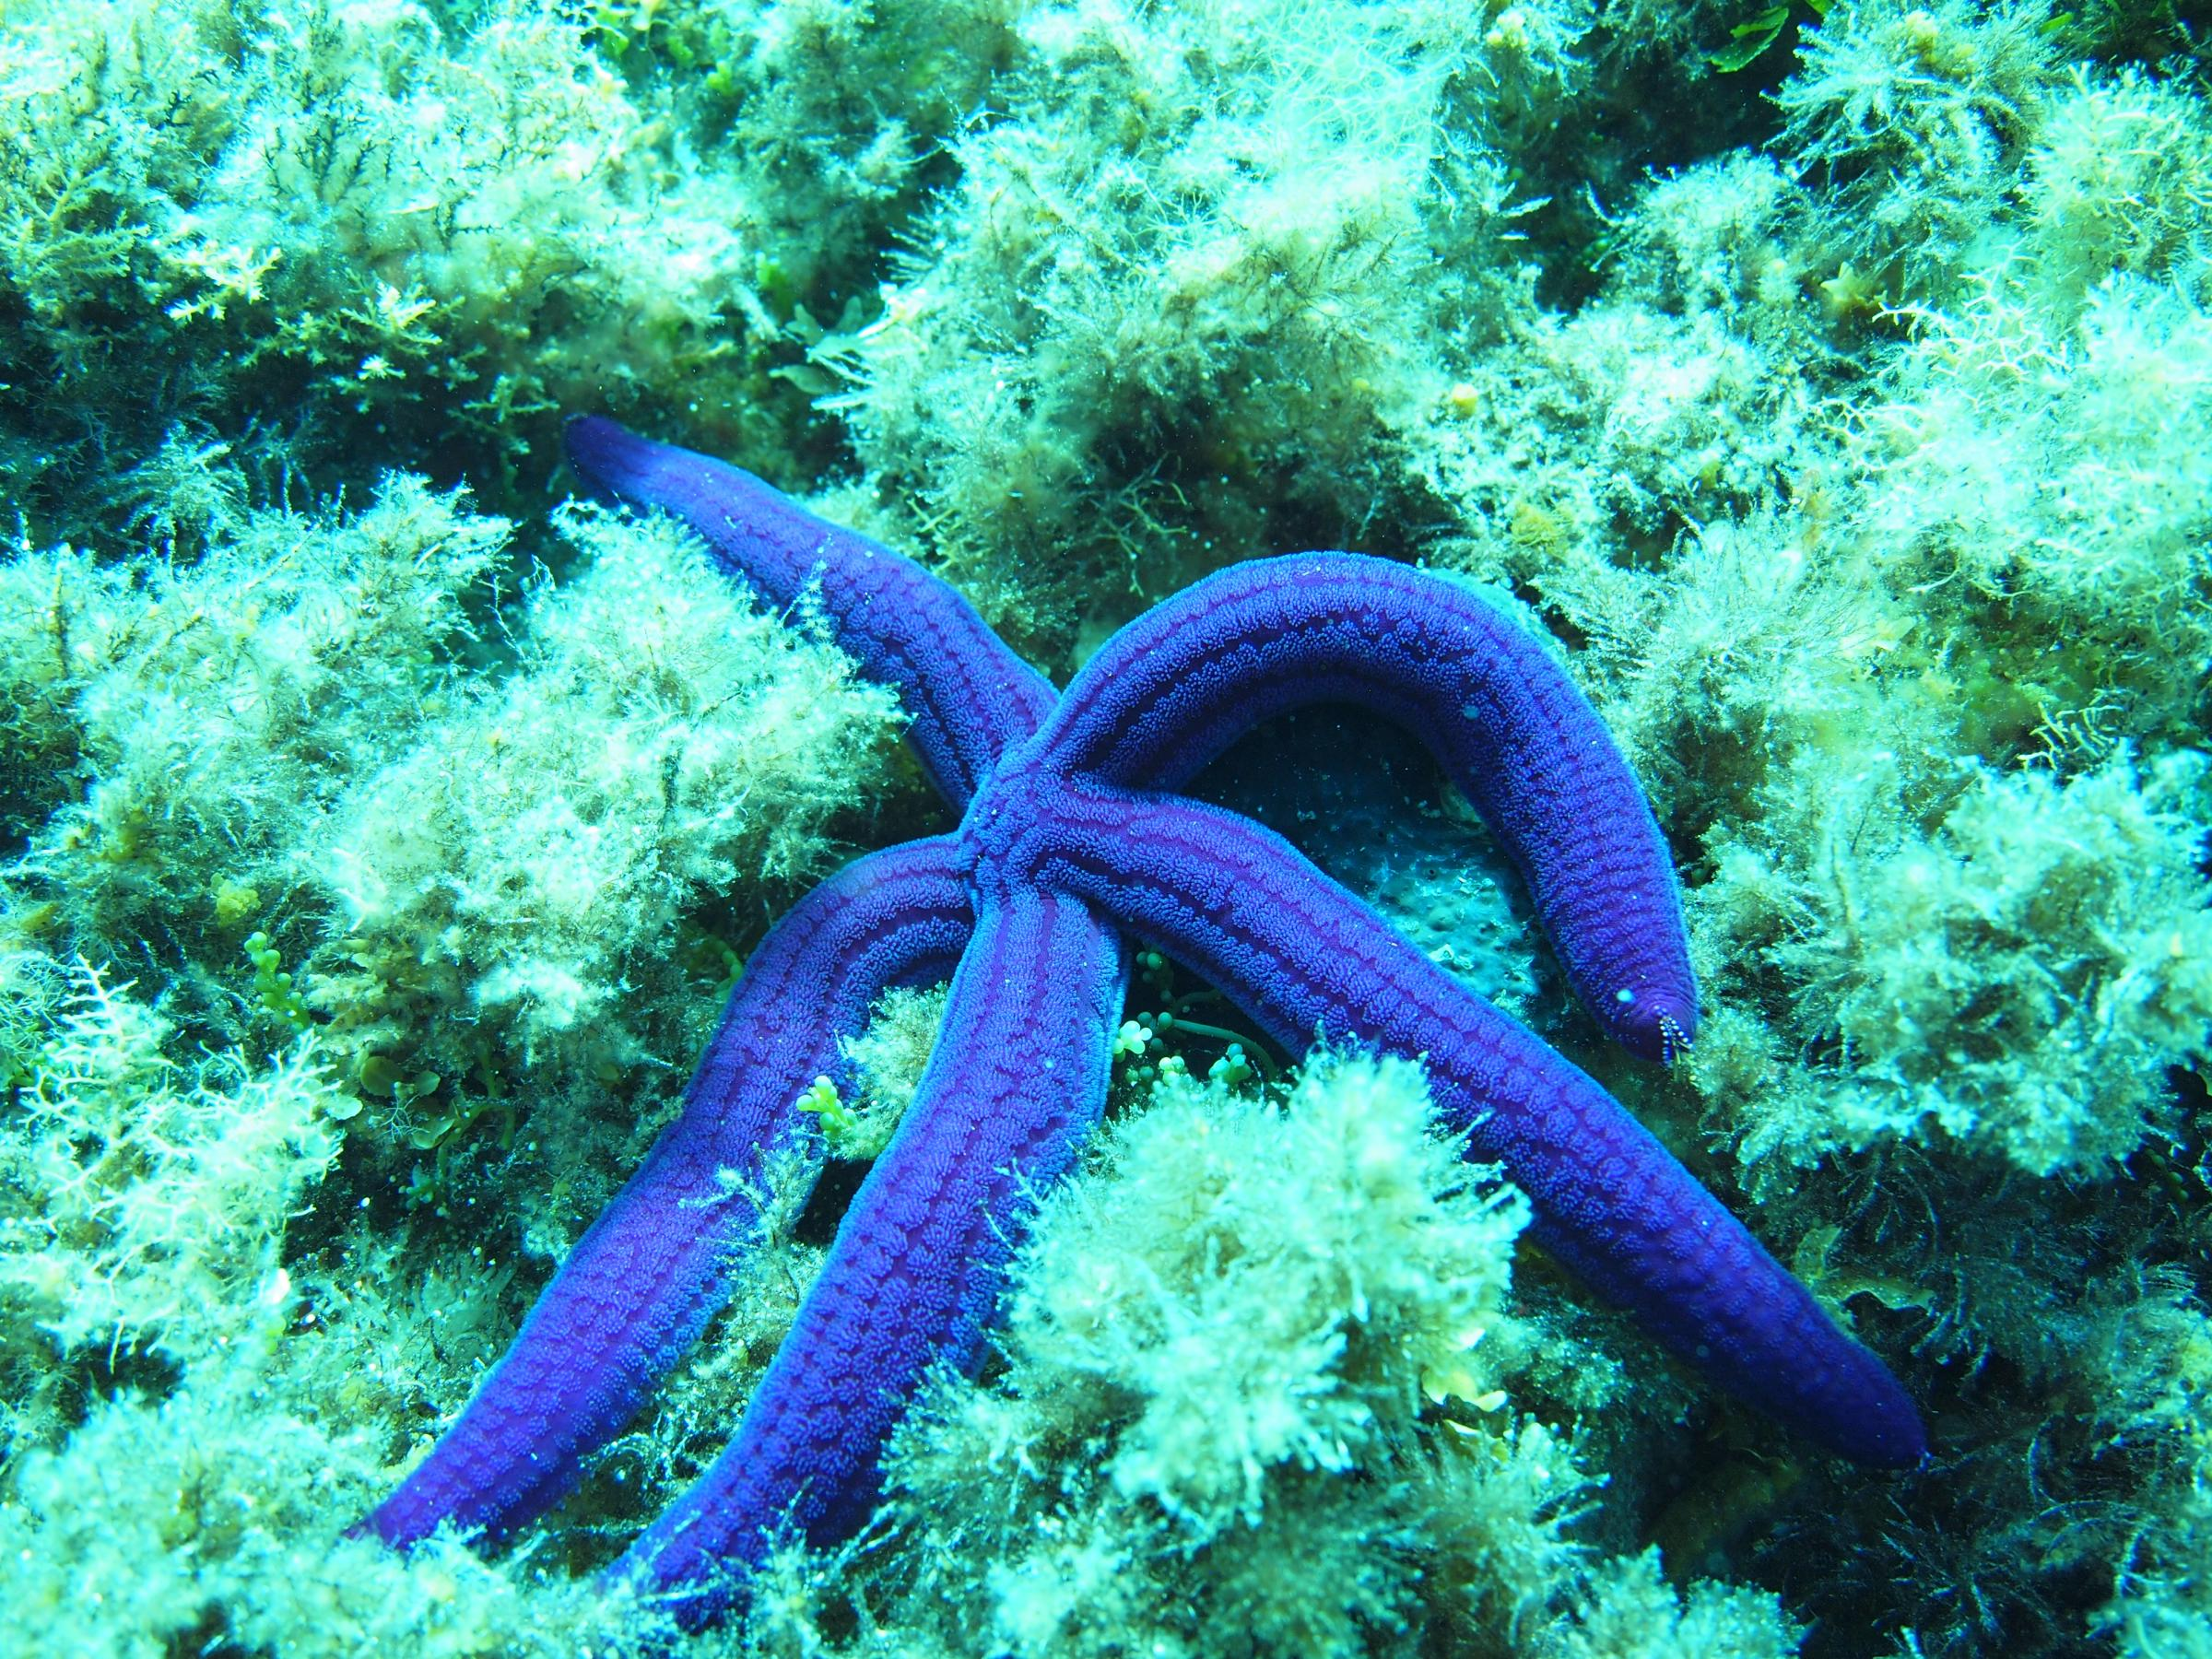 Blue sea star [Toni Saloranta]